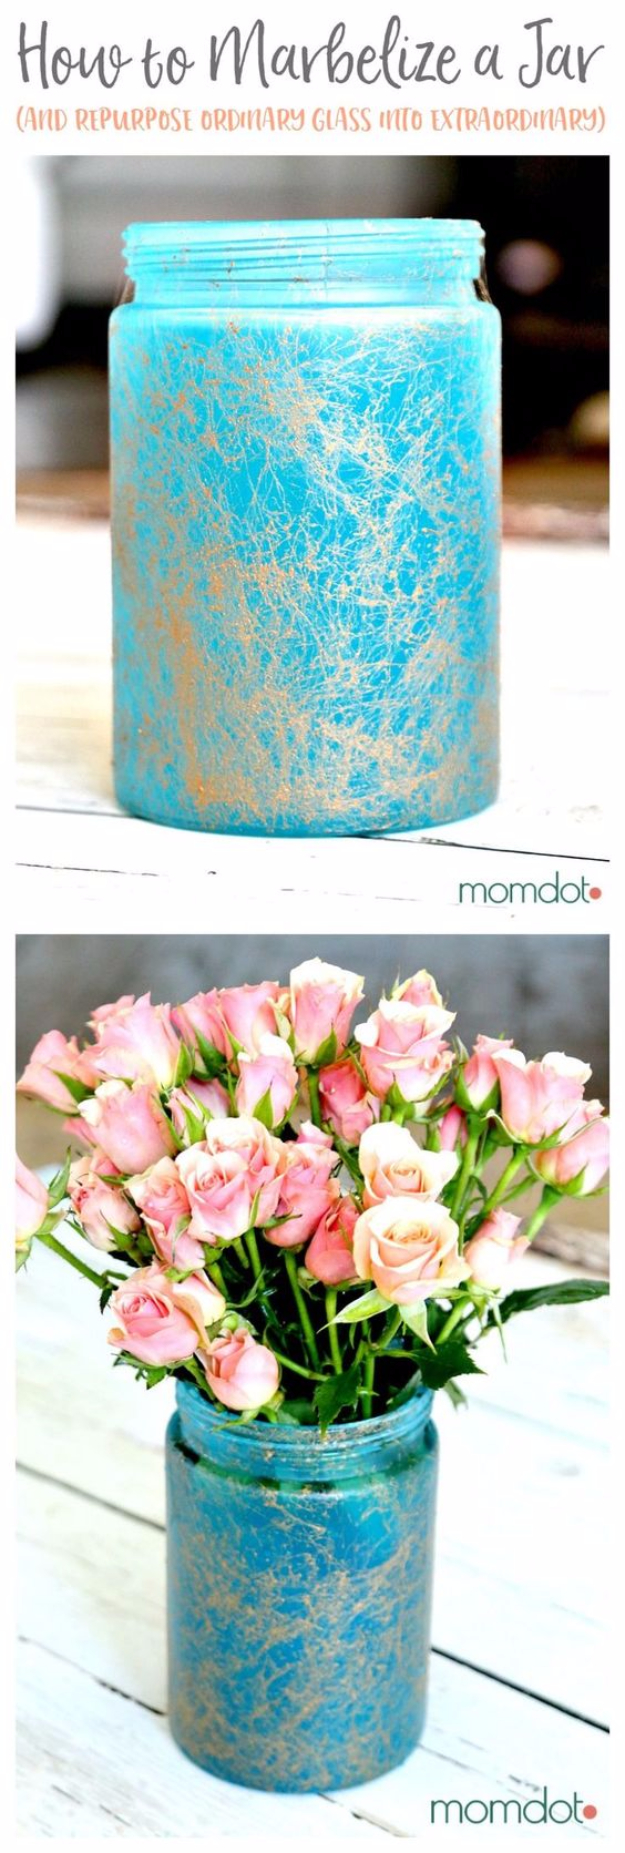 Mason Jar Crafts You Can Make In Under an Hour - Marbelized Mason Jar -Quick Mason Jar DIY Projects that Make Cool Home Decor and Awesome DIY Gifts - Best Creative Ideas for Mason Jars with Step By Step Tutorials and Instructions - For Teens, For Home, For Gifts, For Kids, For Summer, For Fall #masonjarcrafts #easycrafts